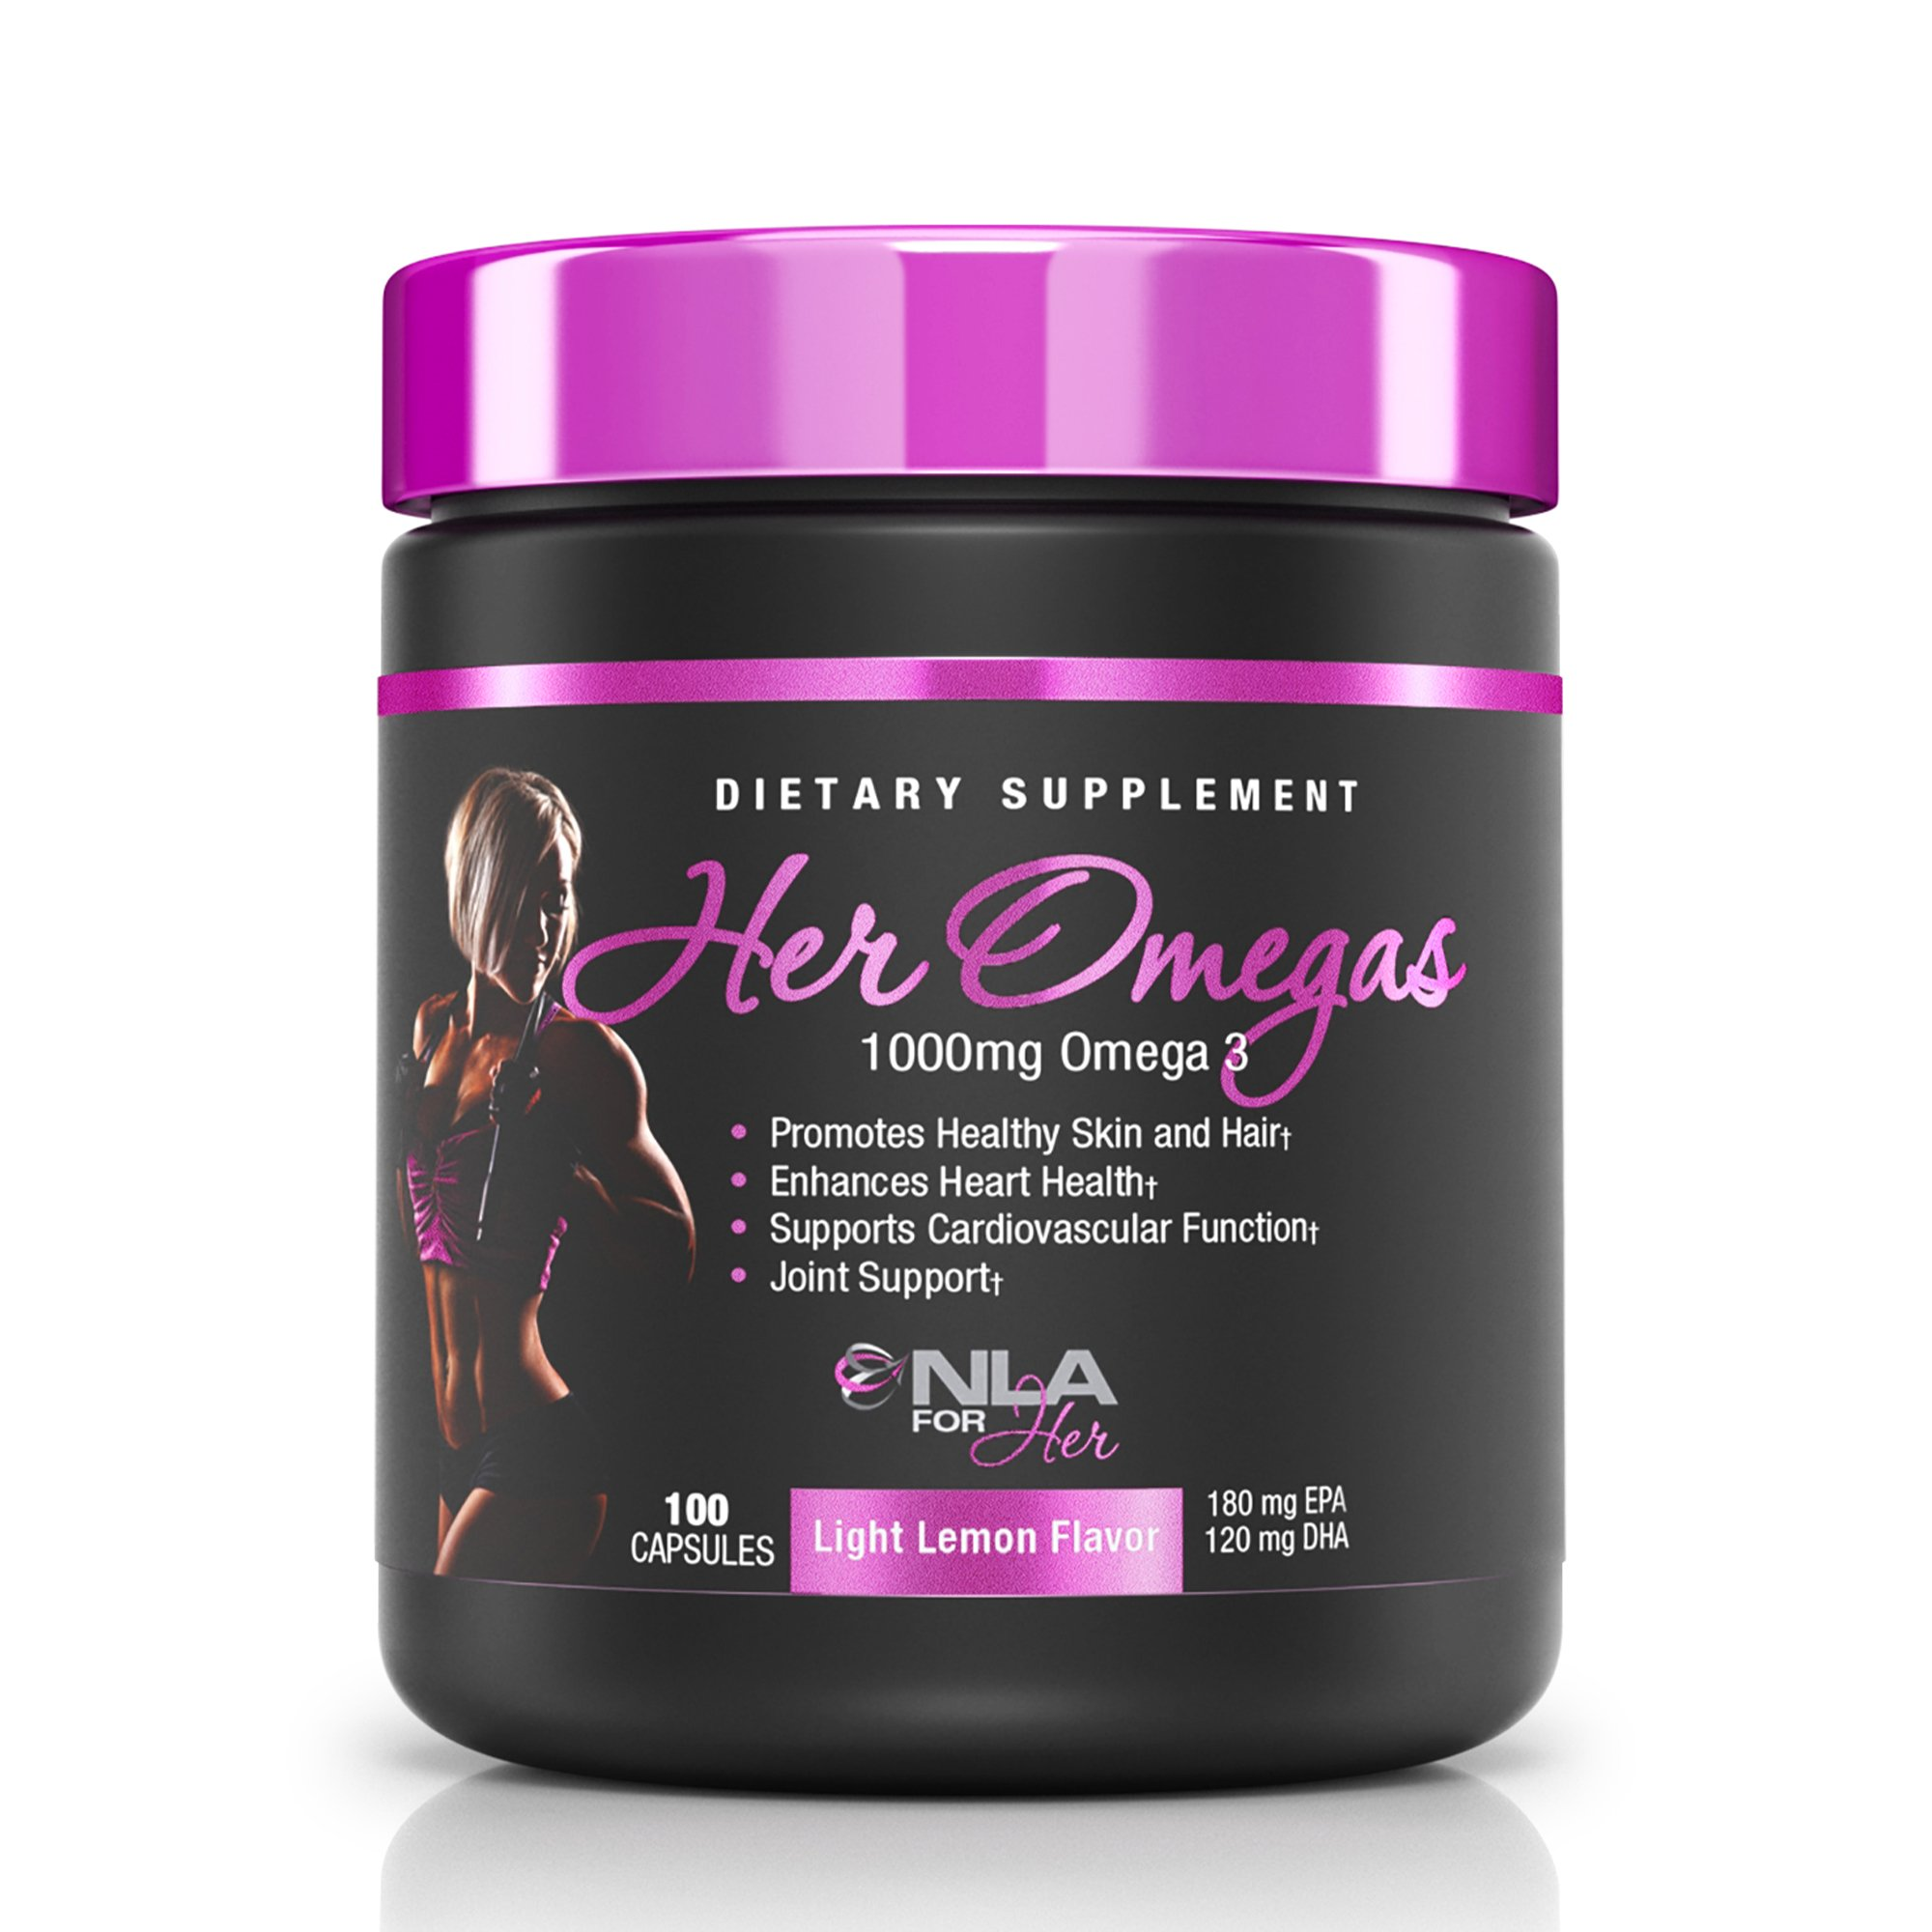 NLA for Her - Her Omegas - 1000 mg Omega 3 - Essential Fatty Acids to Support Brain, Heart, Vision and Joint Health & Supports Cardiovascular Function/Joint Flexibility - Light Lemon - 100 Capsules